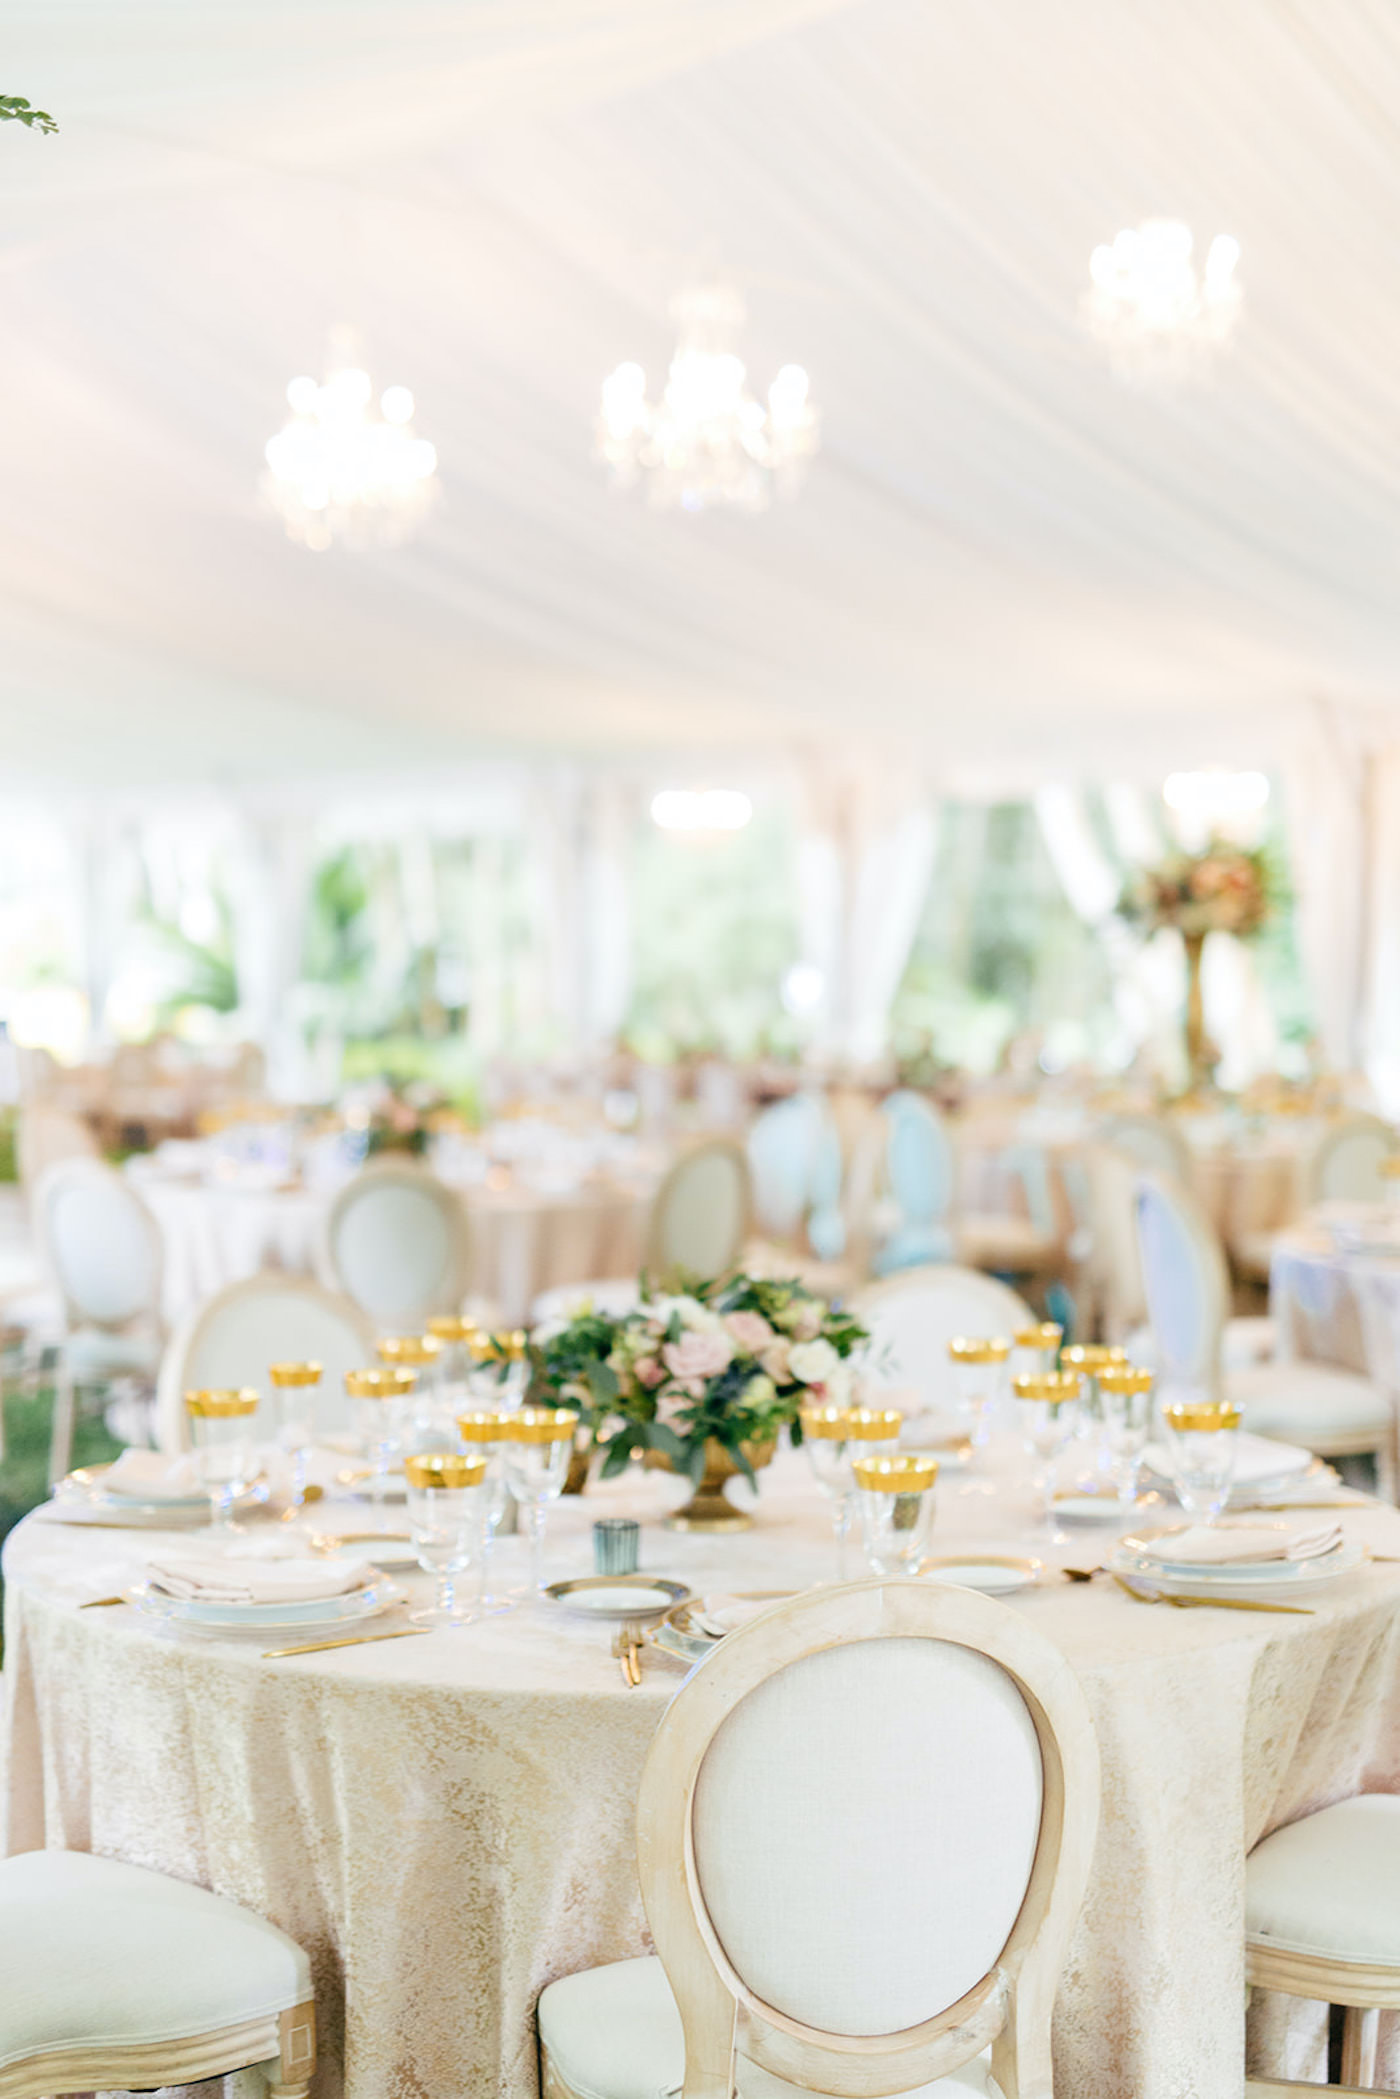 Romantic, Garden Inspired Wedding Reception Decor In White Tented Outdoor Florida Wedding, Round Tables with Gold Linens,Modern Circle Back Chairs, Gold Accented Table Setting, Chandelier, Low Floral centerpiece with Blush Pink Flowers and Greenery   Sarasota Wedding Planner NK Weddings